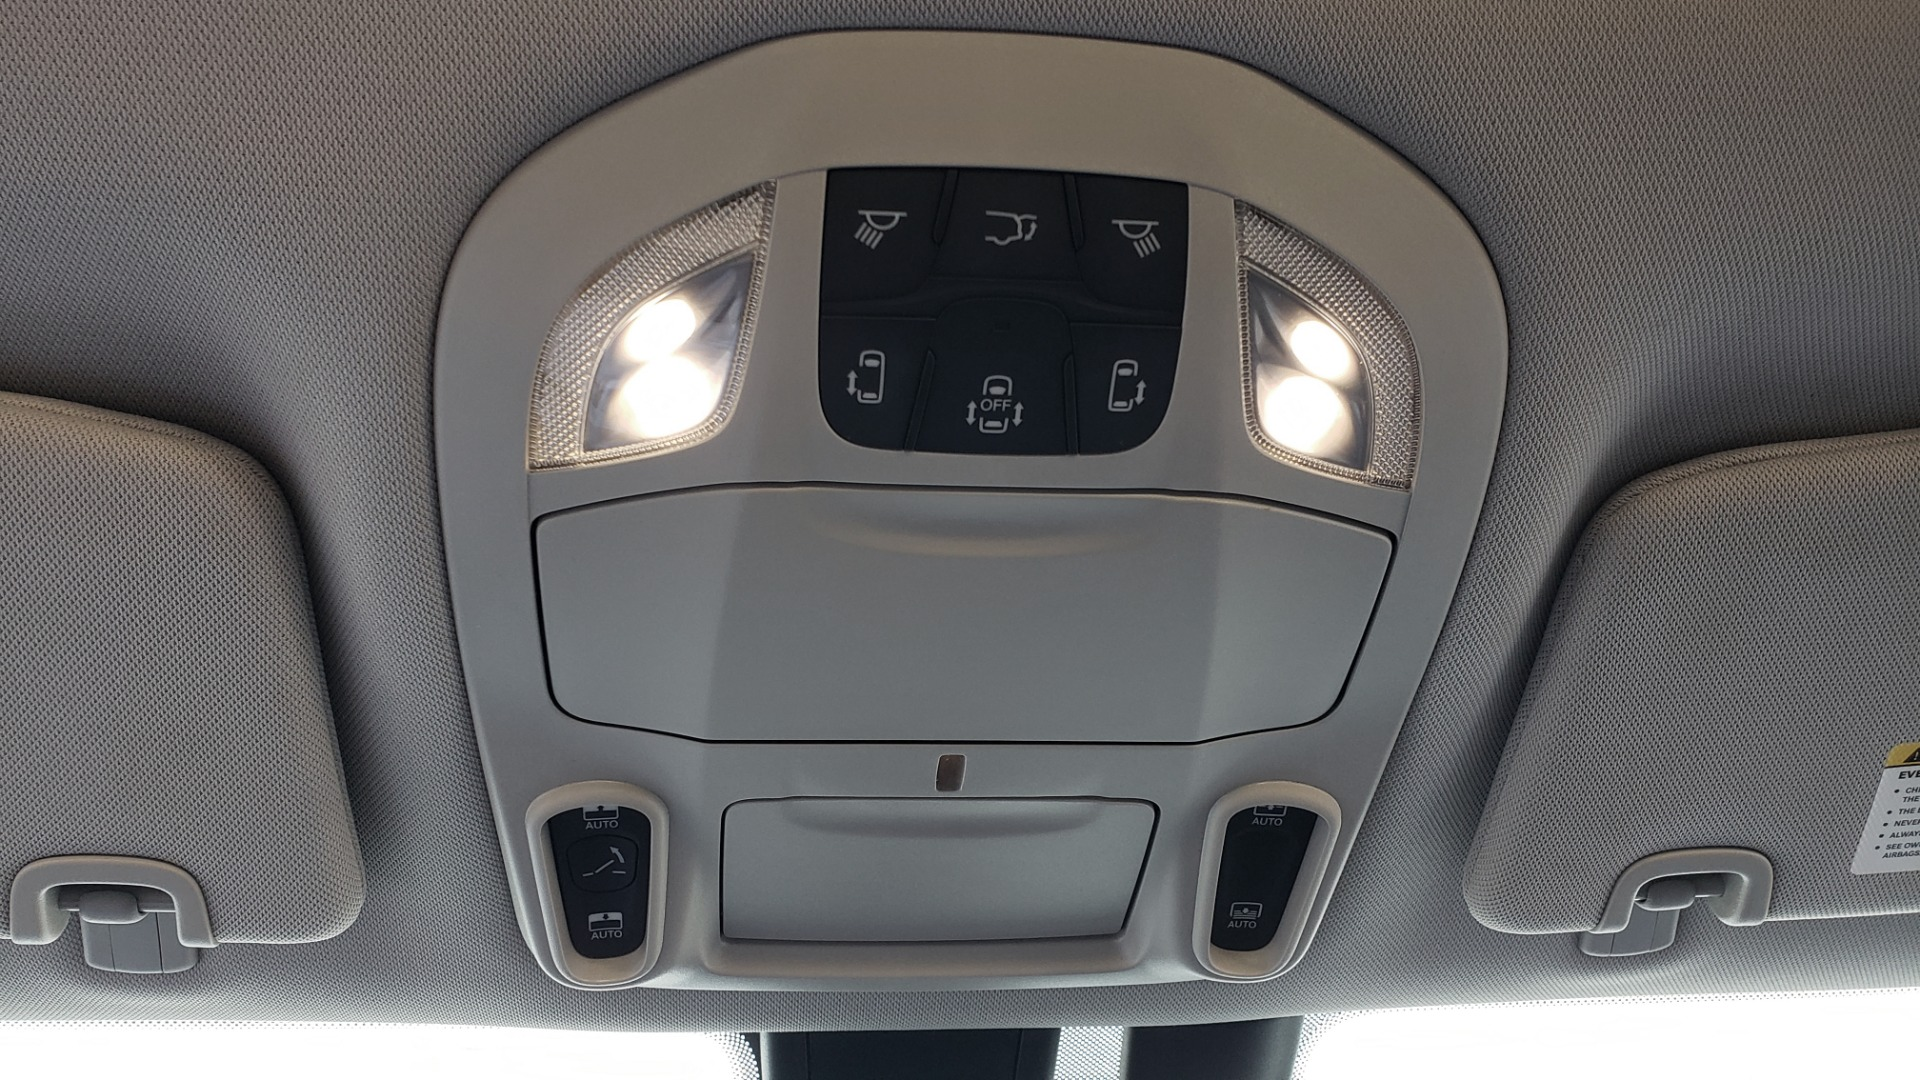 Used 2018 Chrysler PACIFICA LIMITED / 3.6L V6 / NAV / PANO-ROOF / 3-ROWS / REARVIEW for sale Sold at Formula Imports in Charlotte NC 28227 62